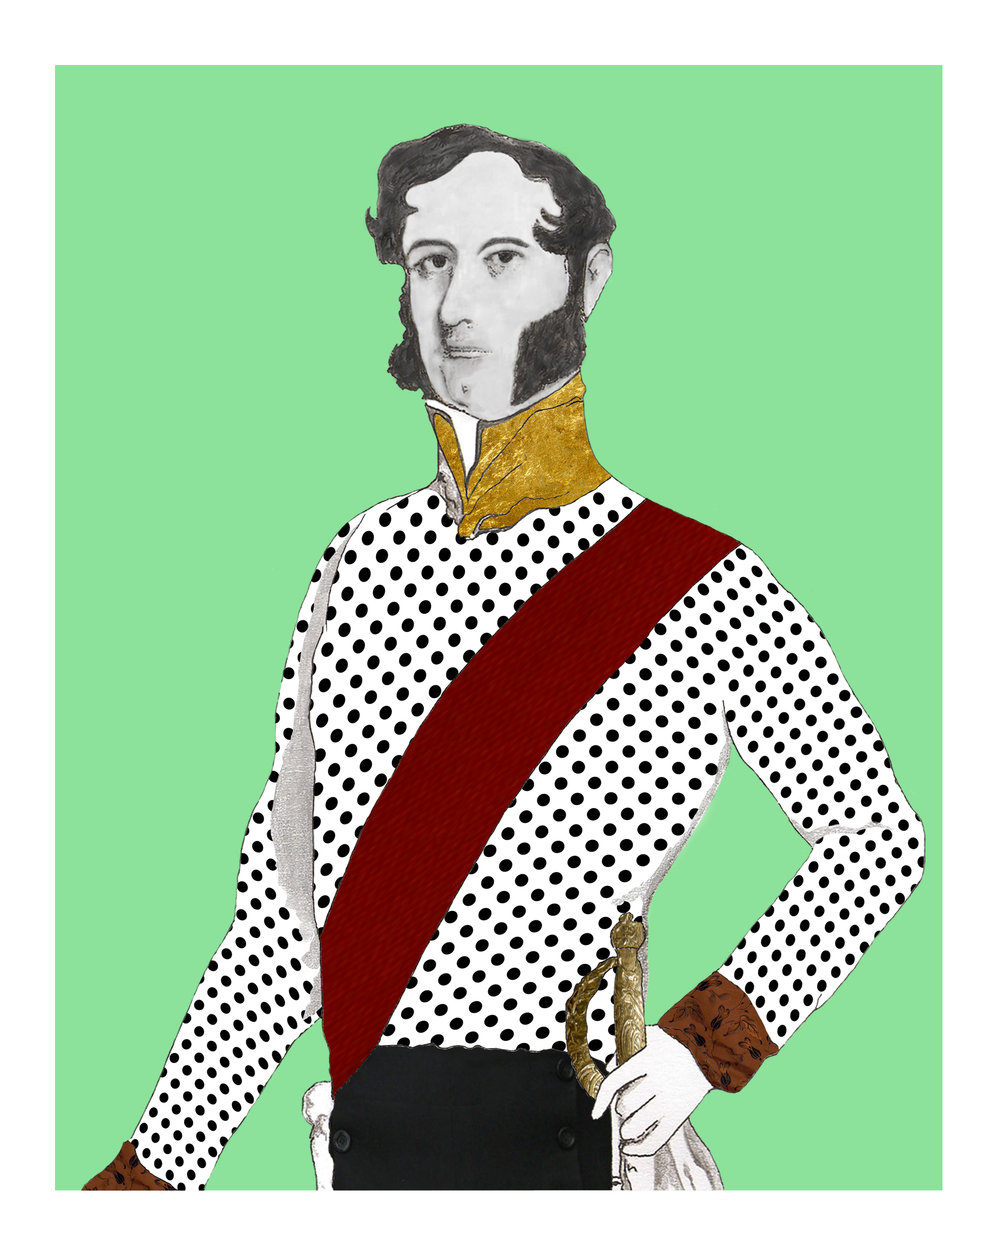 The Duke on Green Giclée print 10 in x 8 in Edition of 25